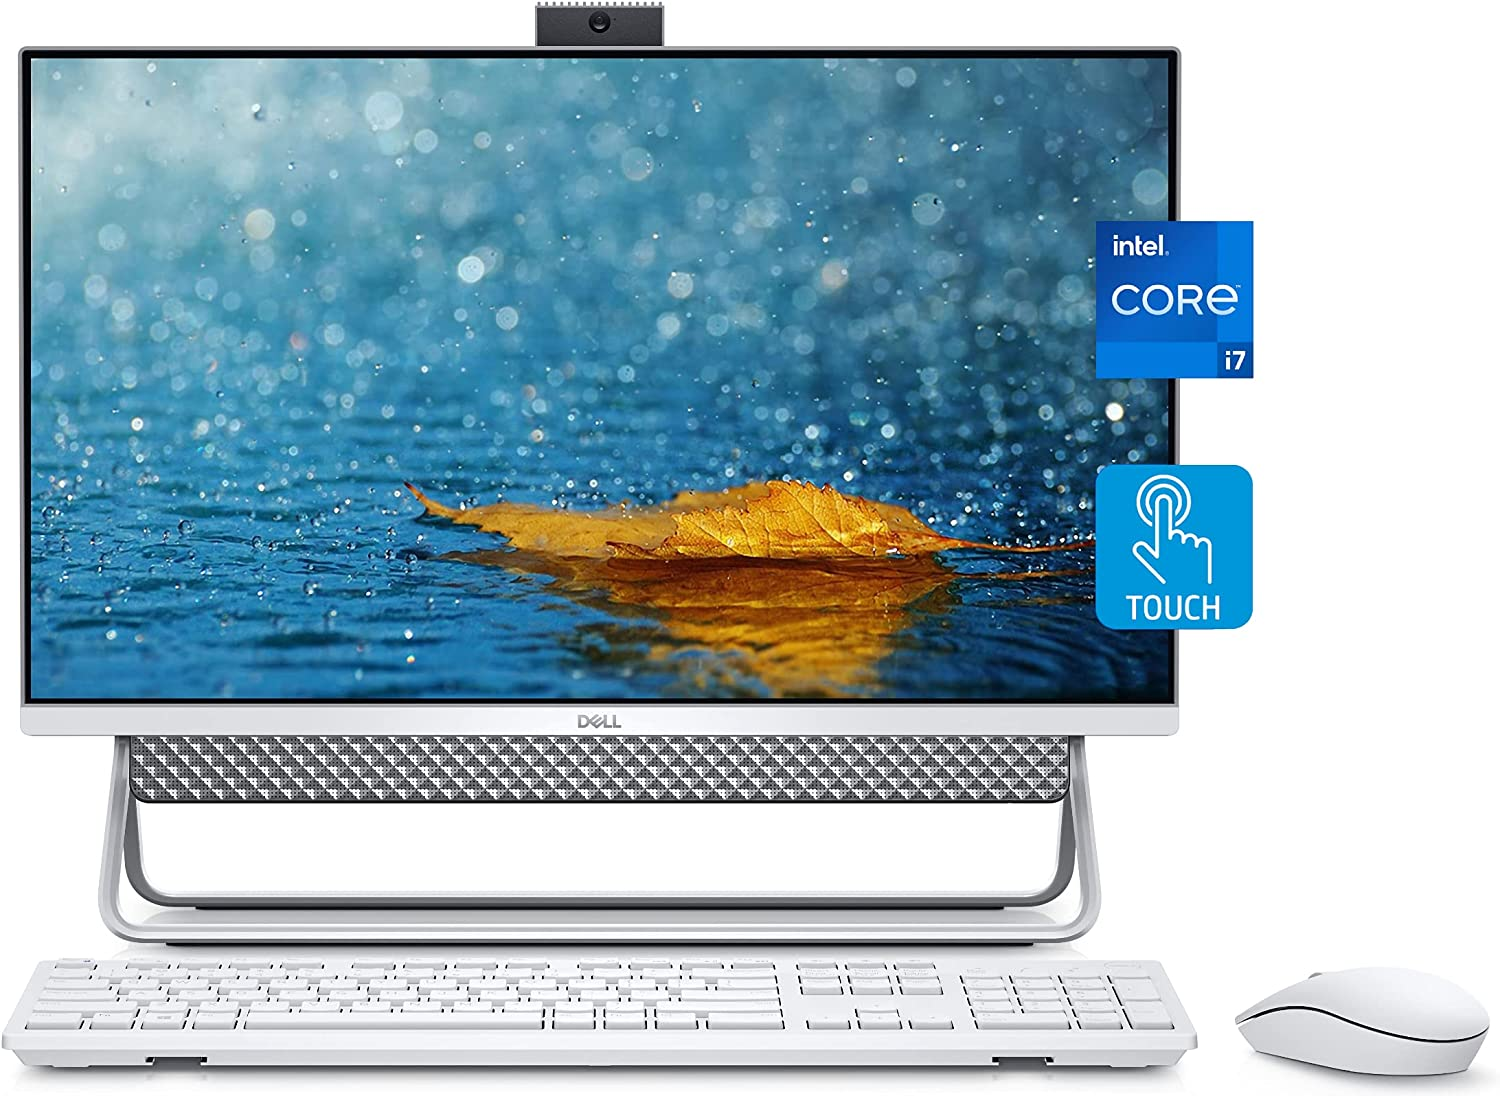 Dell 2021 Inspiron 24 5000 All-in-One Desktop, 24